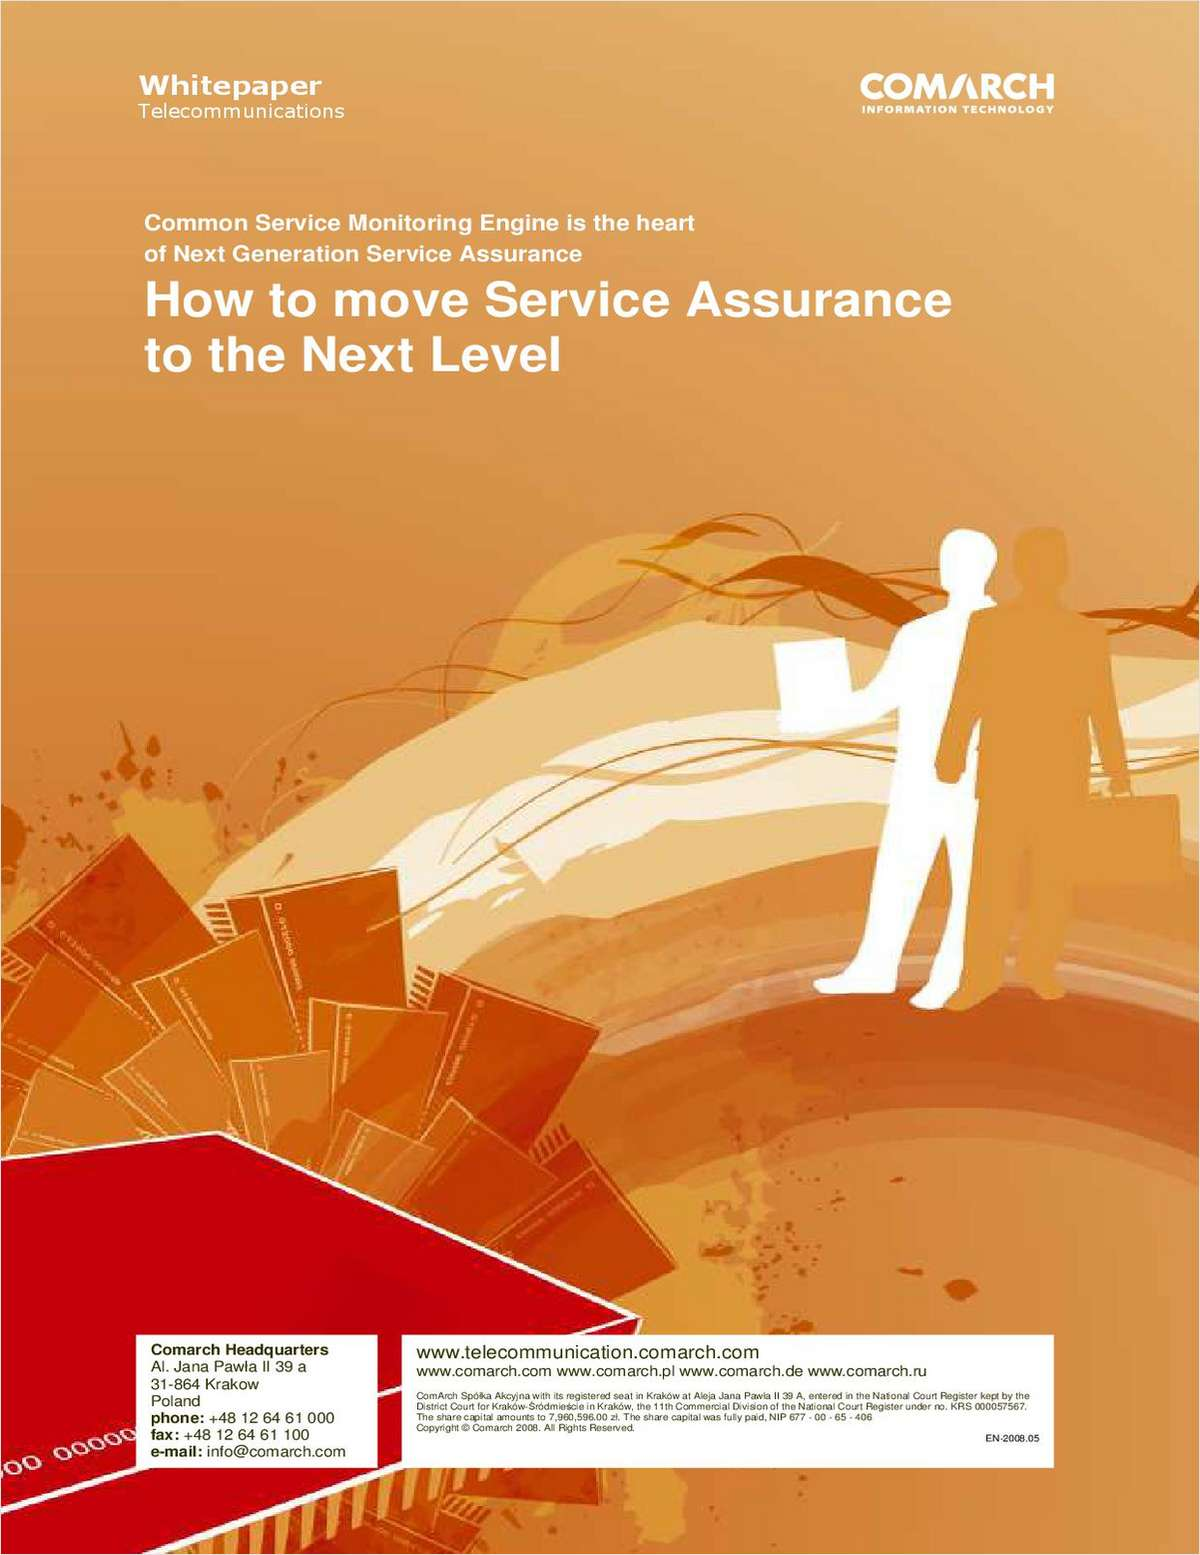 Moving Service Assurance to the Next Level